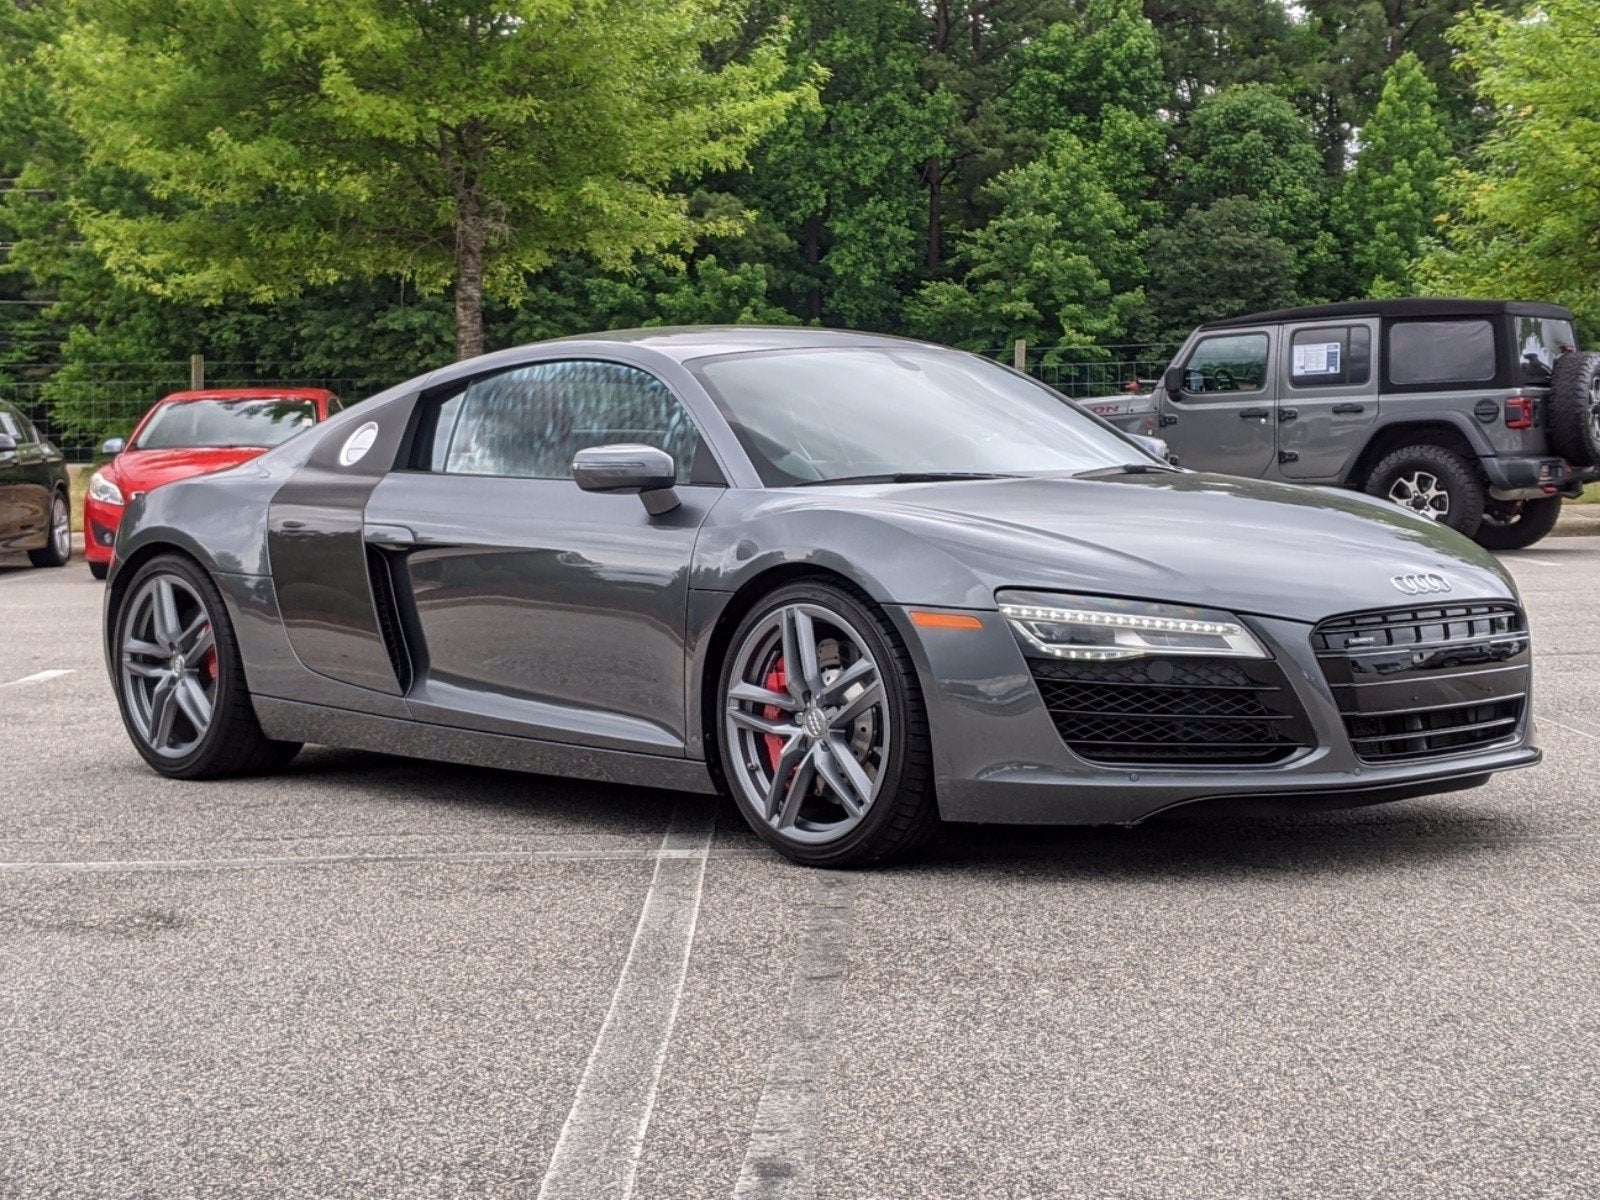 Used 2015 Audi R8 2dr Cpe Auto Quattro V8 North Carolina